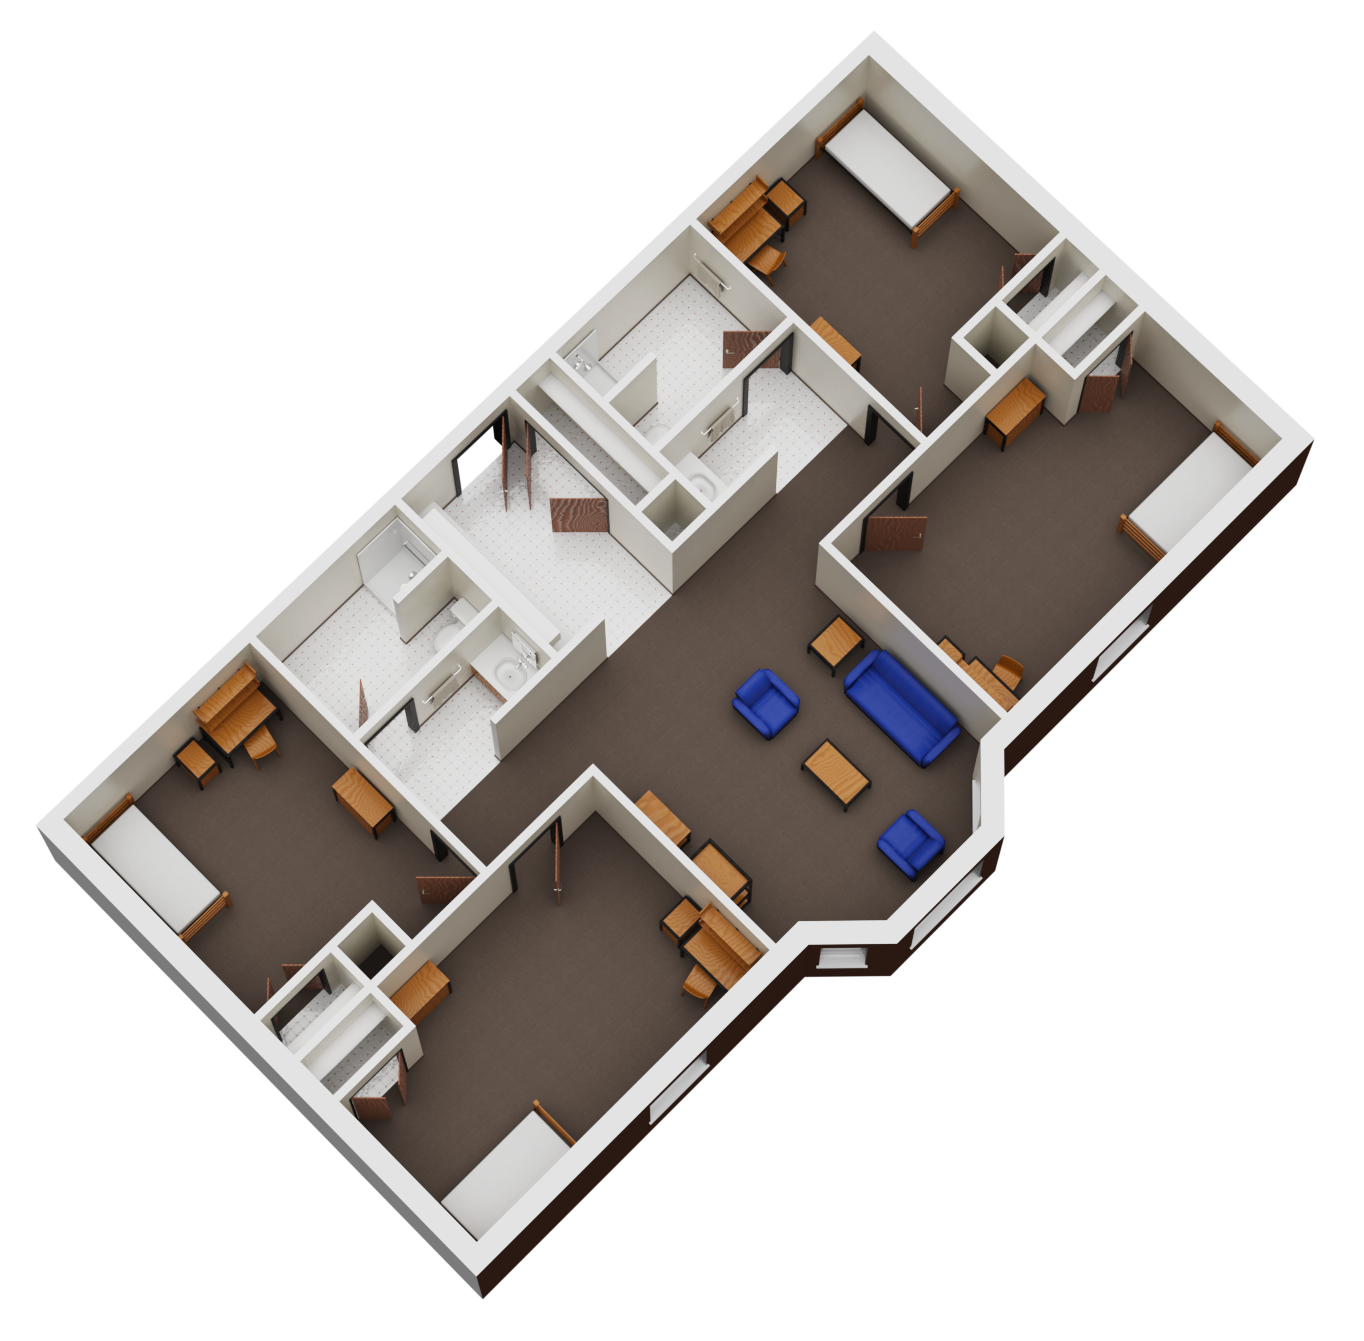 Floorplan for 4 single beds and 2 baths room.